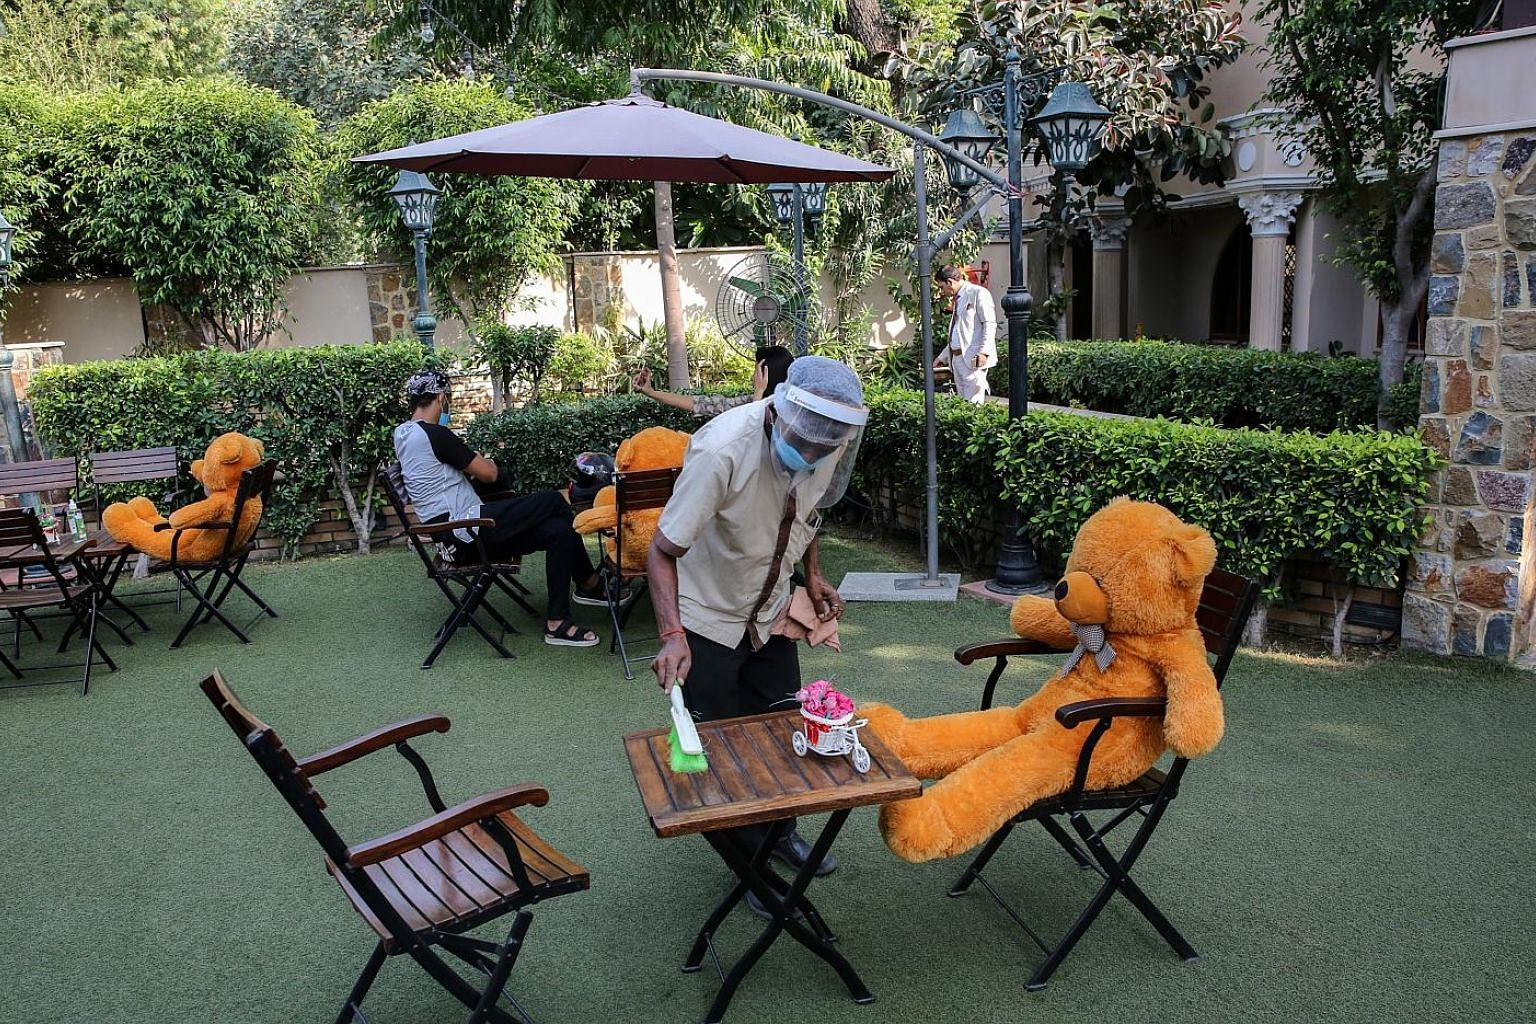 Teddy bears placed to encourage social distancing at Rustique cafe in New Delhi on Friday. The last 24 hours up to Saturday saw 85,362 new infections in India, taking the total past 5.9 million cases. PHOTO: EPA-EFE